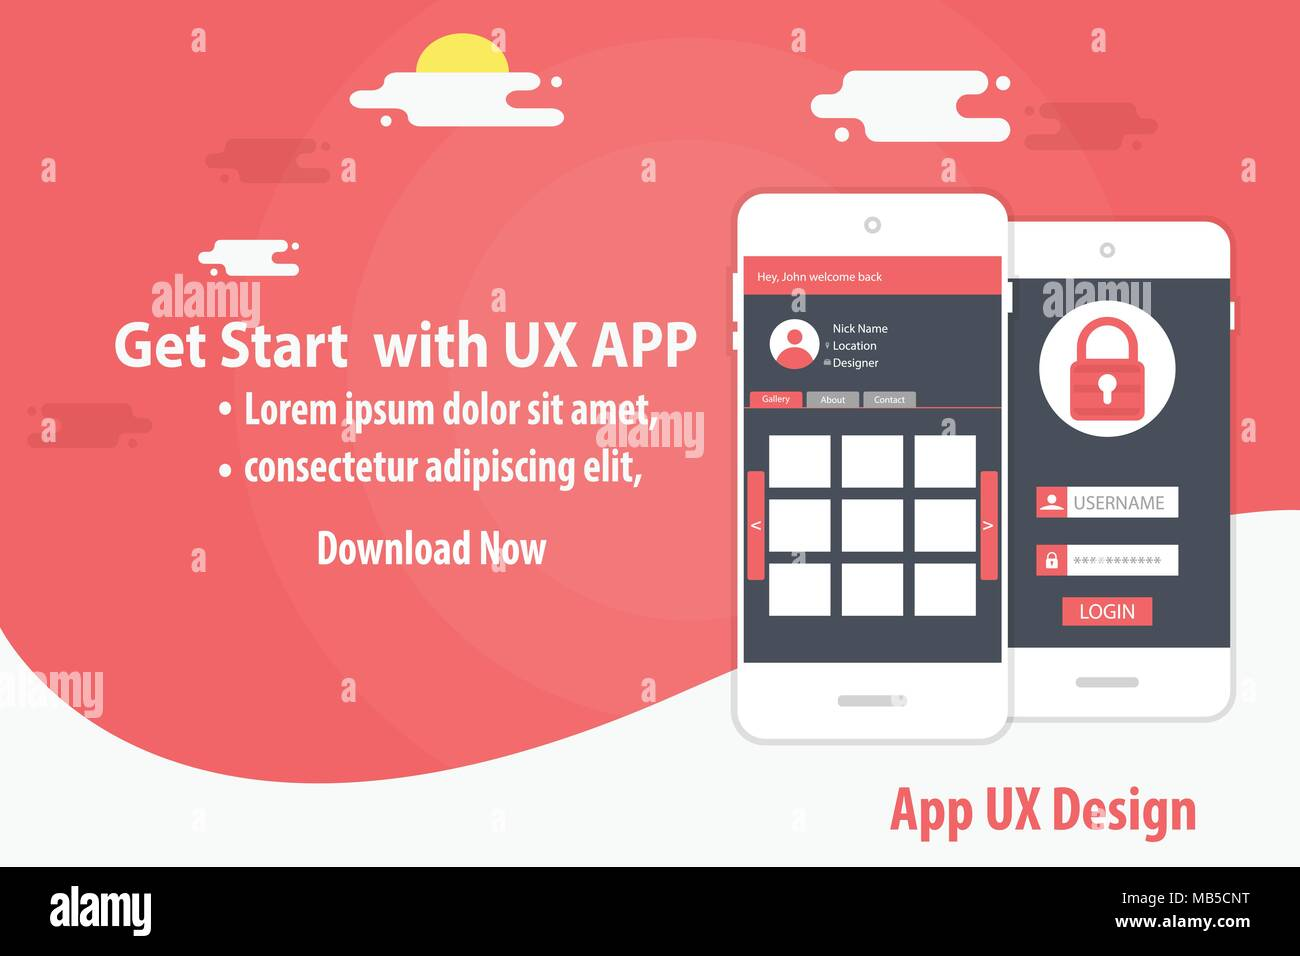 mobile aap UX landing page template - Stock Image